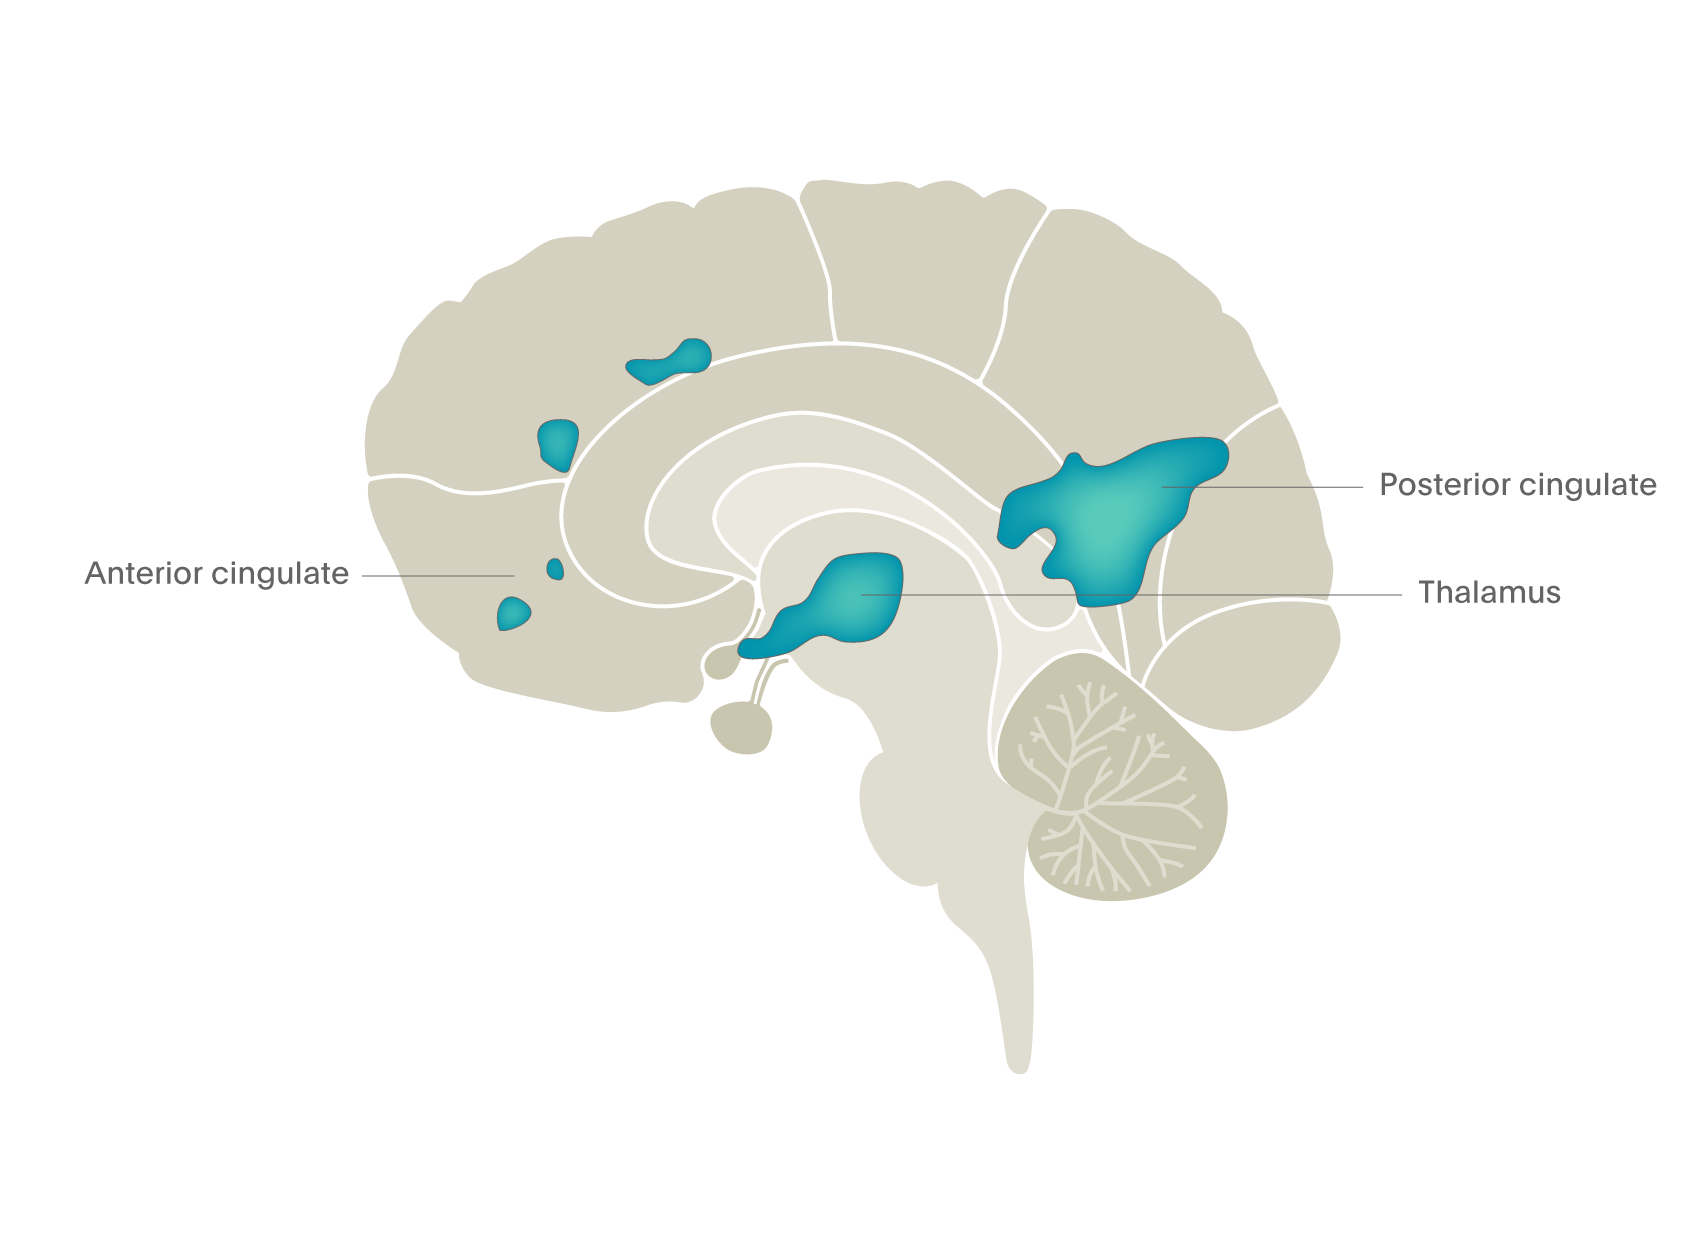 Psychedelic drugs turn off brain activity in the cingulate regions and thalamus – fMRI BOLD